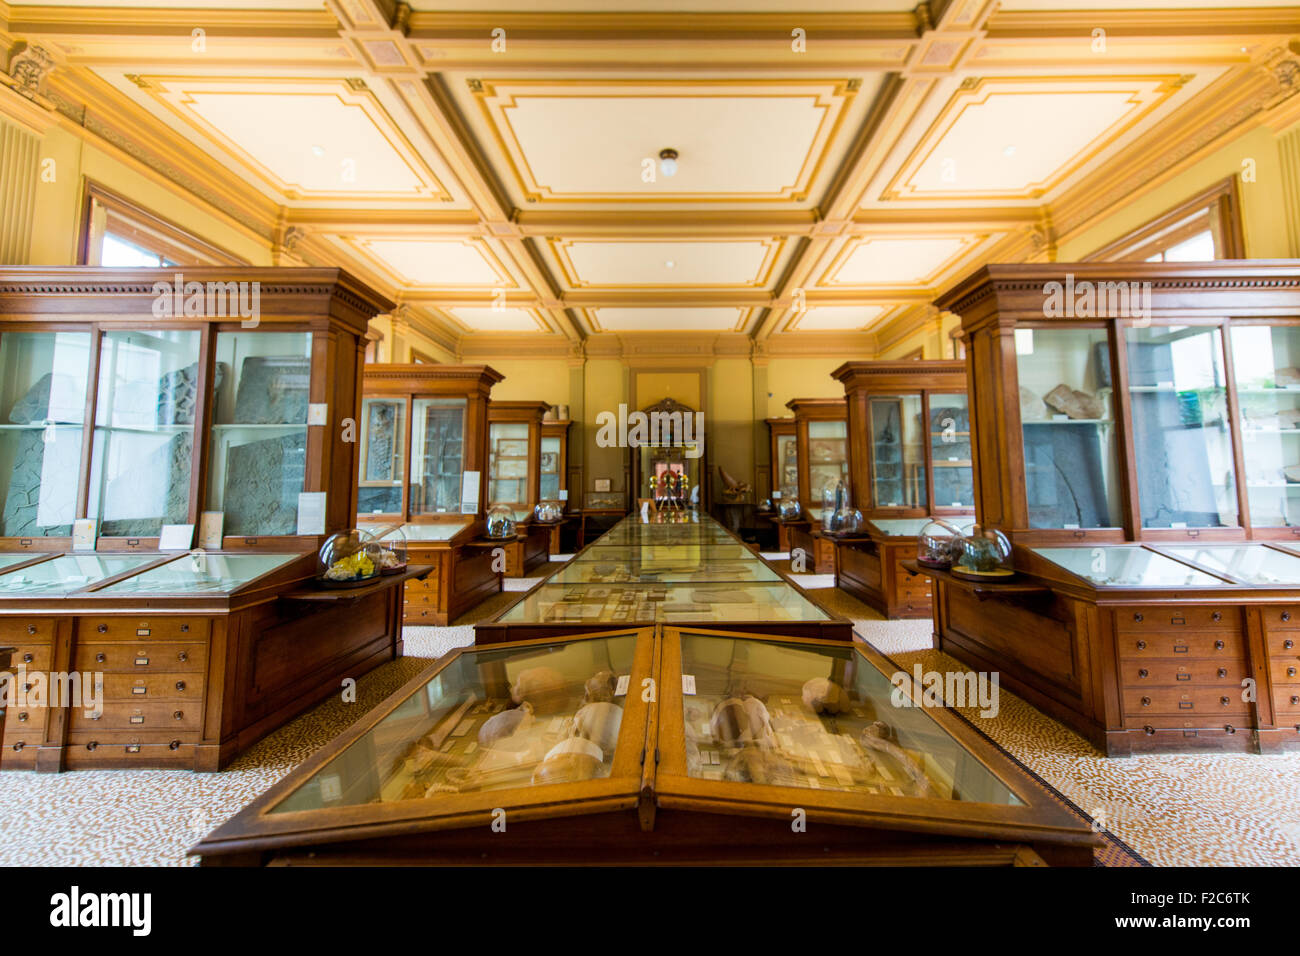 The Teylers Museum the art, natural history, and science museum in Haarlem, Netherlands, Stock Photo